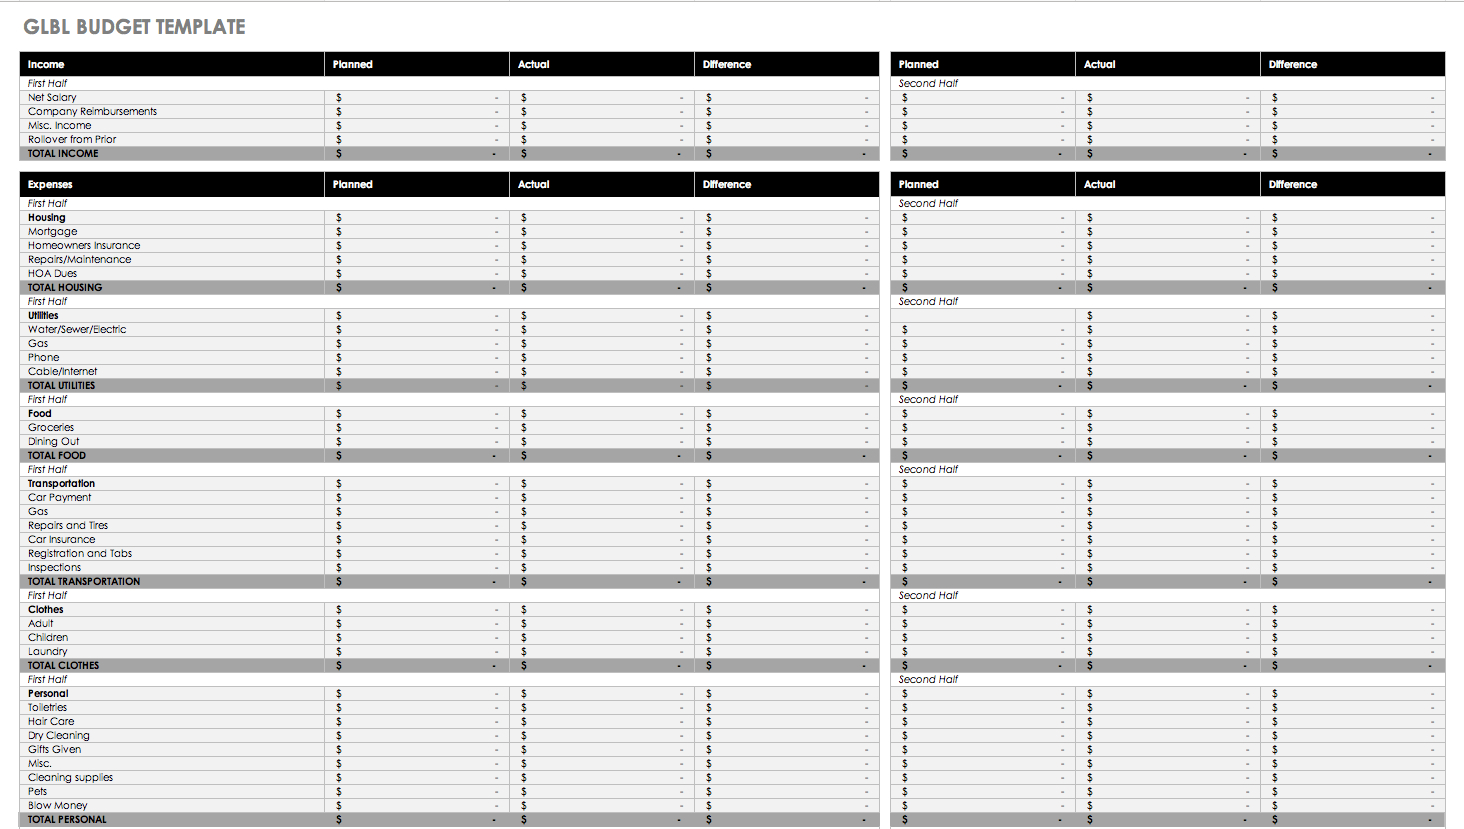 Budget Vs Actual Spreadsheet Intended For Free Budget Templates In Excel For Any Use